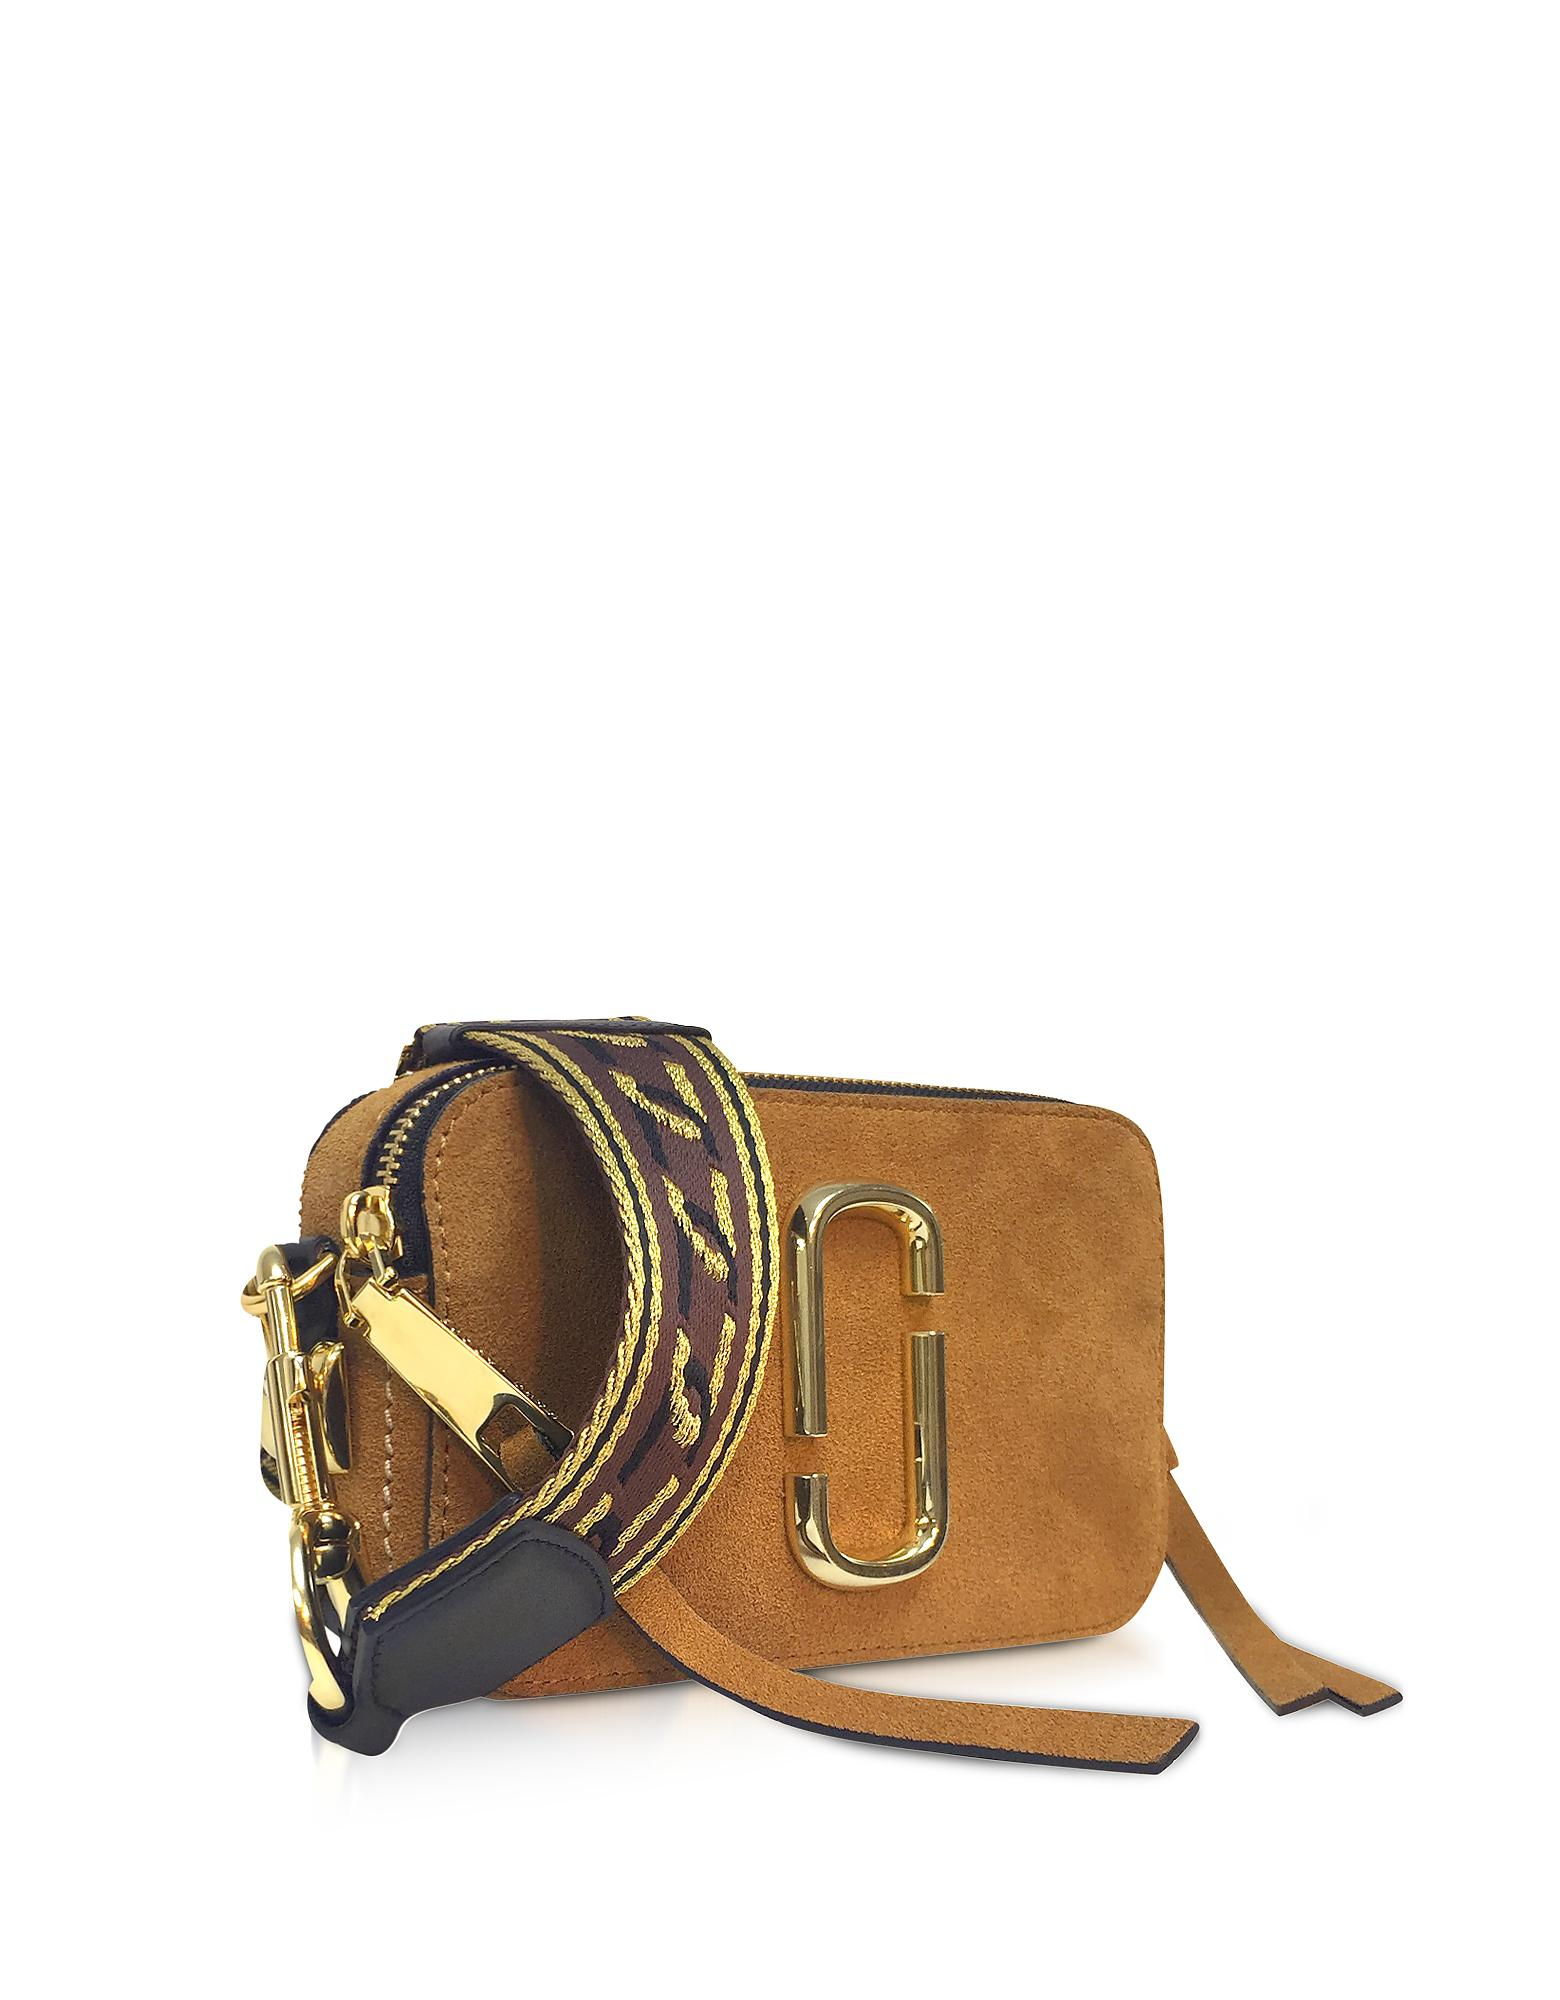 18581085fc54 Lyst - Marc Jacobs Mustard Yellow Chain Snapshot Small Camera Bag in ...